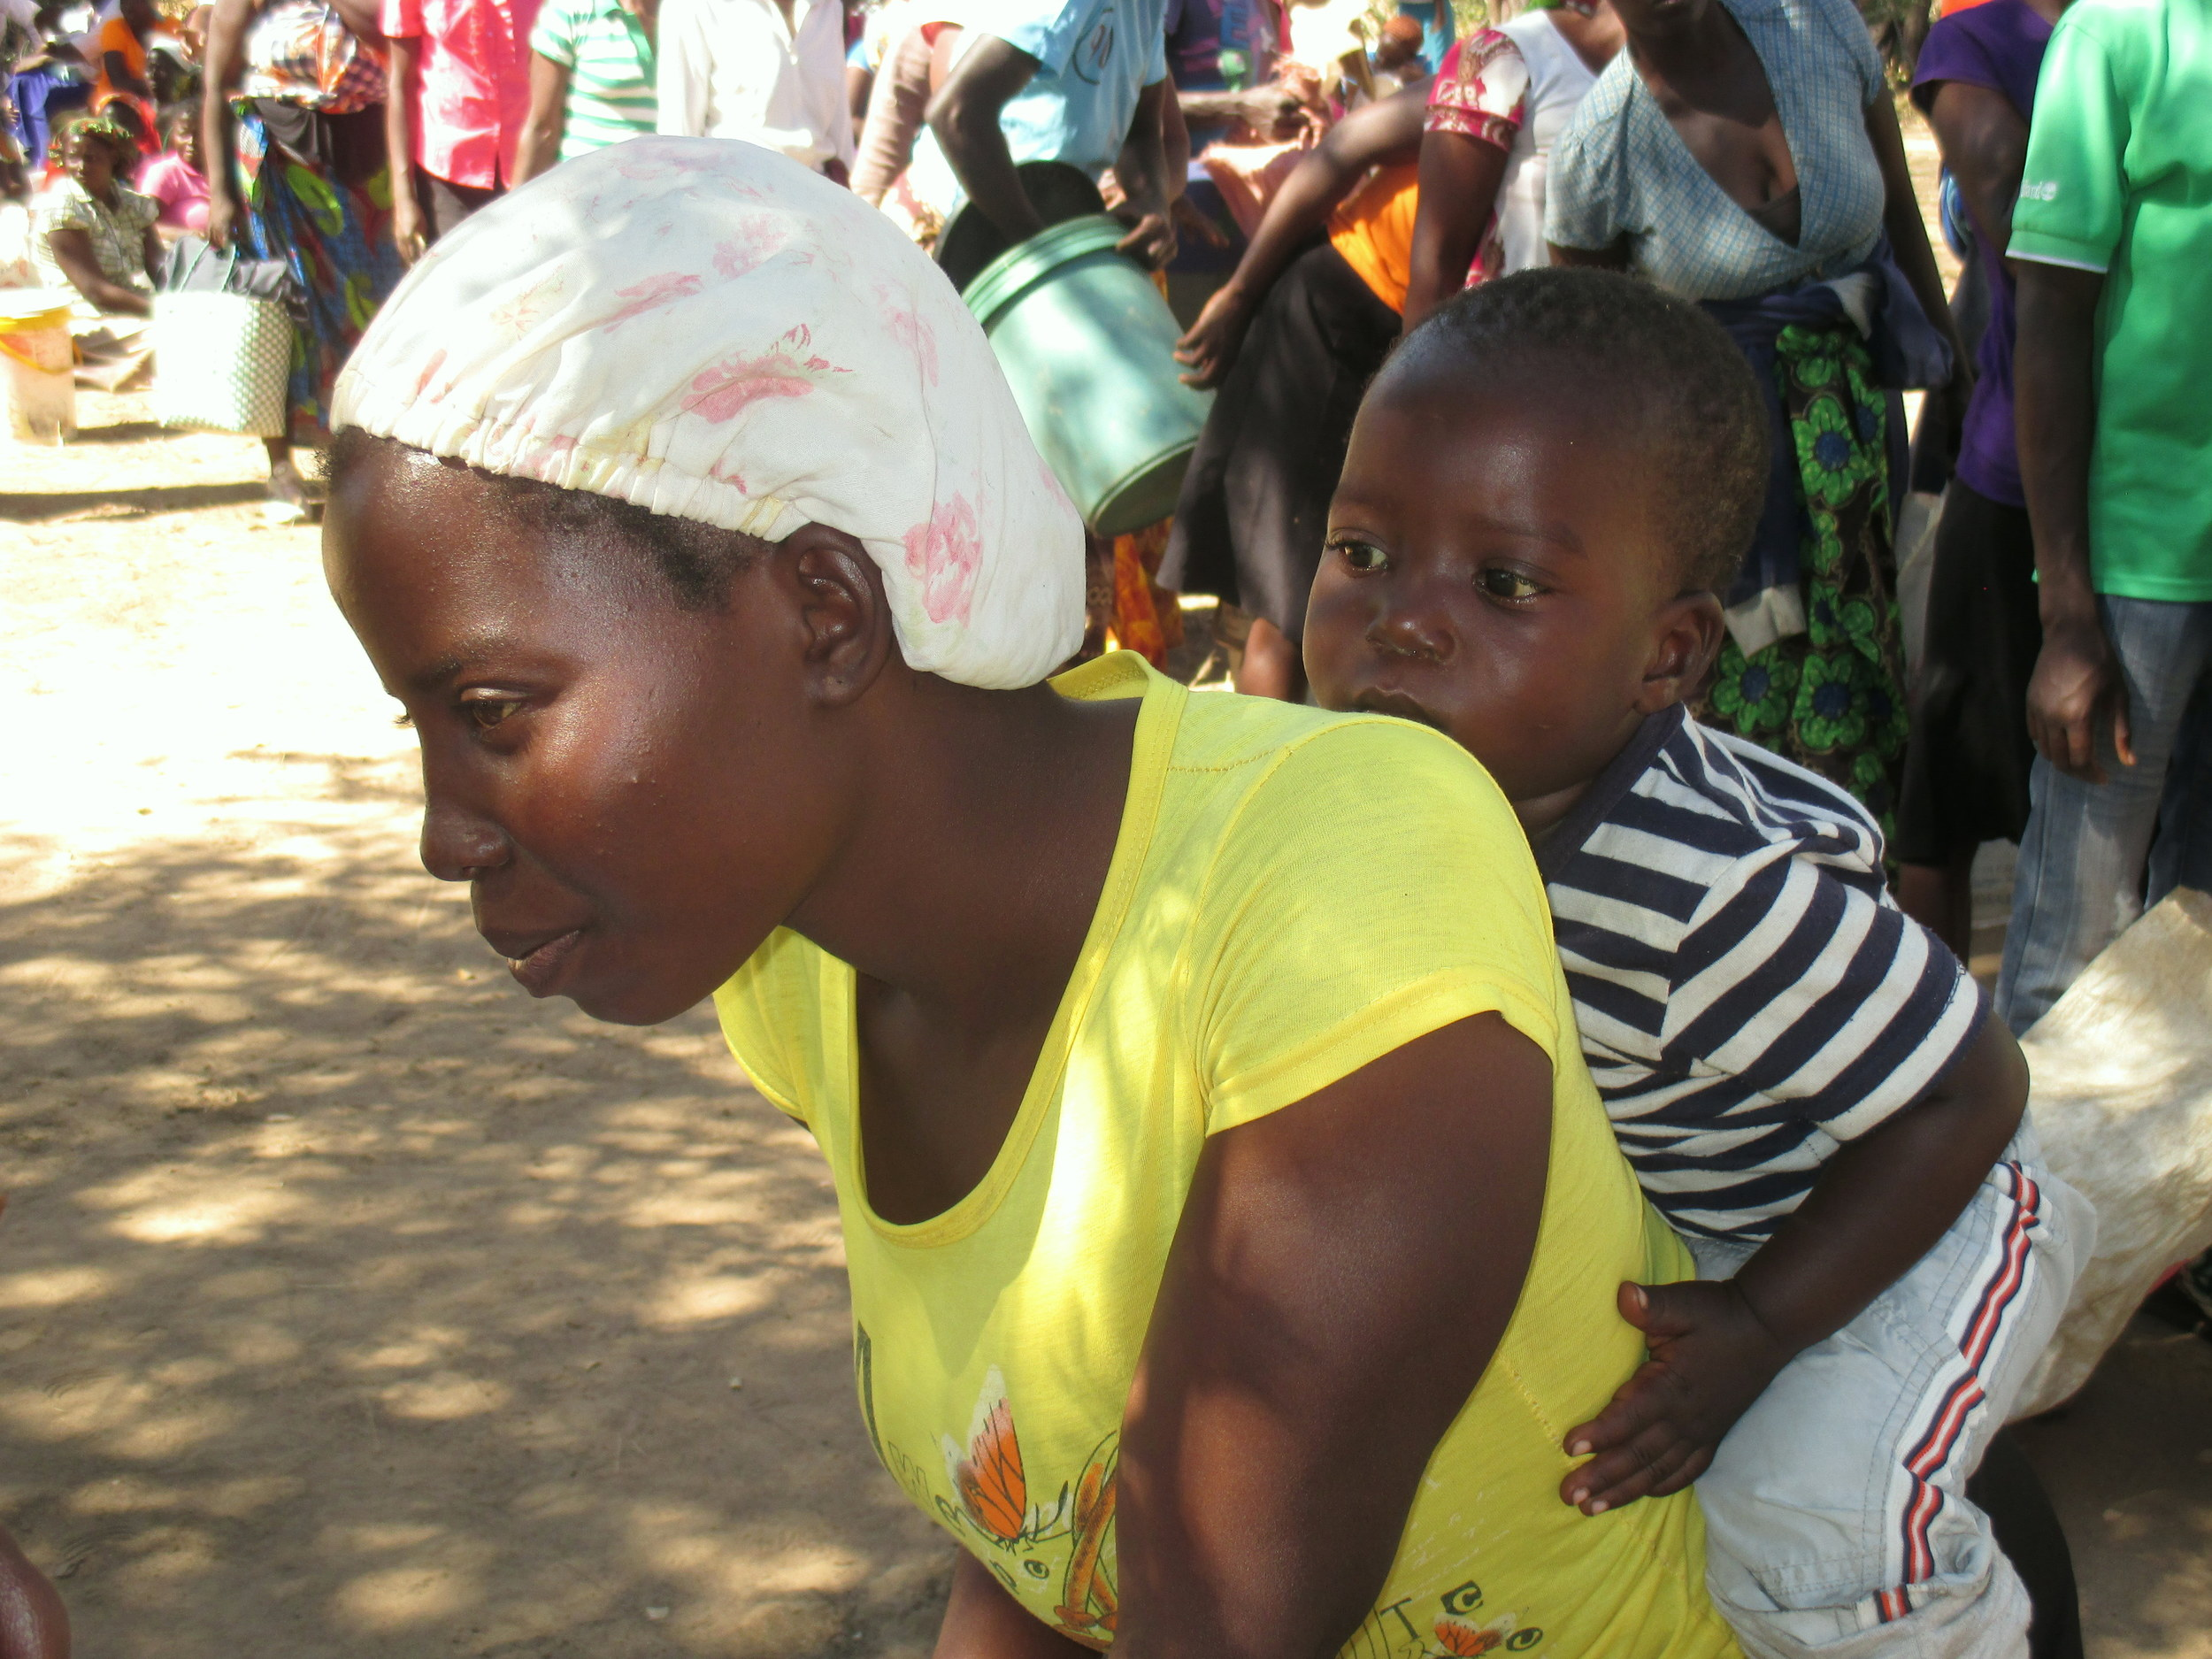 A mother waits in line at a UN World Food Program food distribution site in Binga District. This was the last day of the monthly food distributions, leaving many parents wondering where their children's next meal will come from.